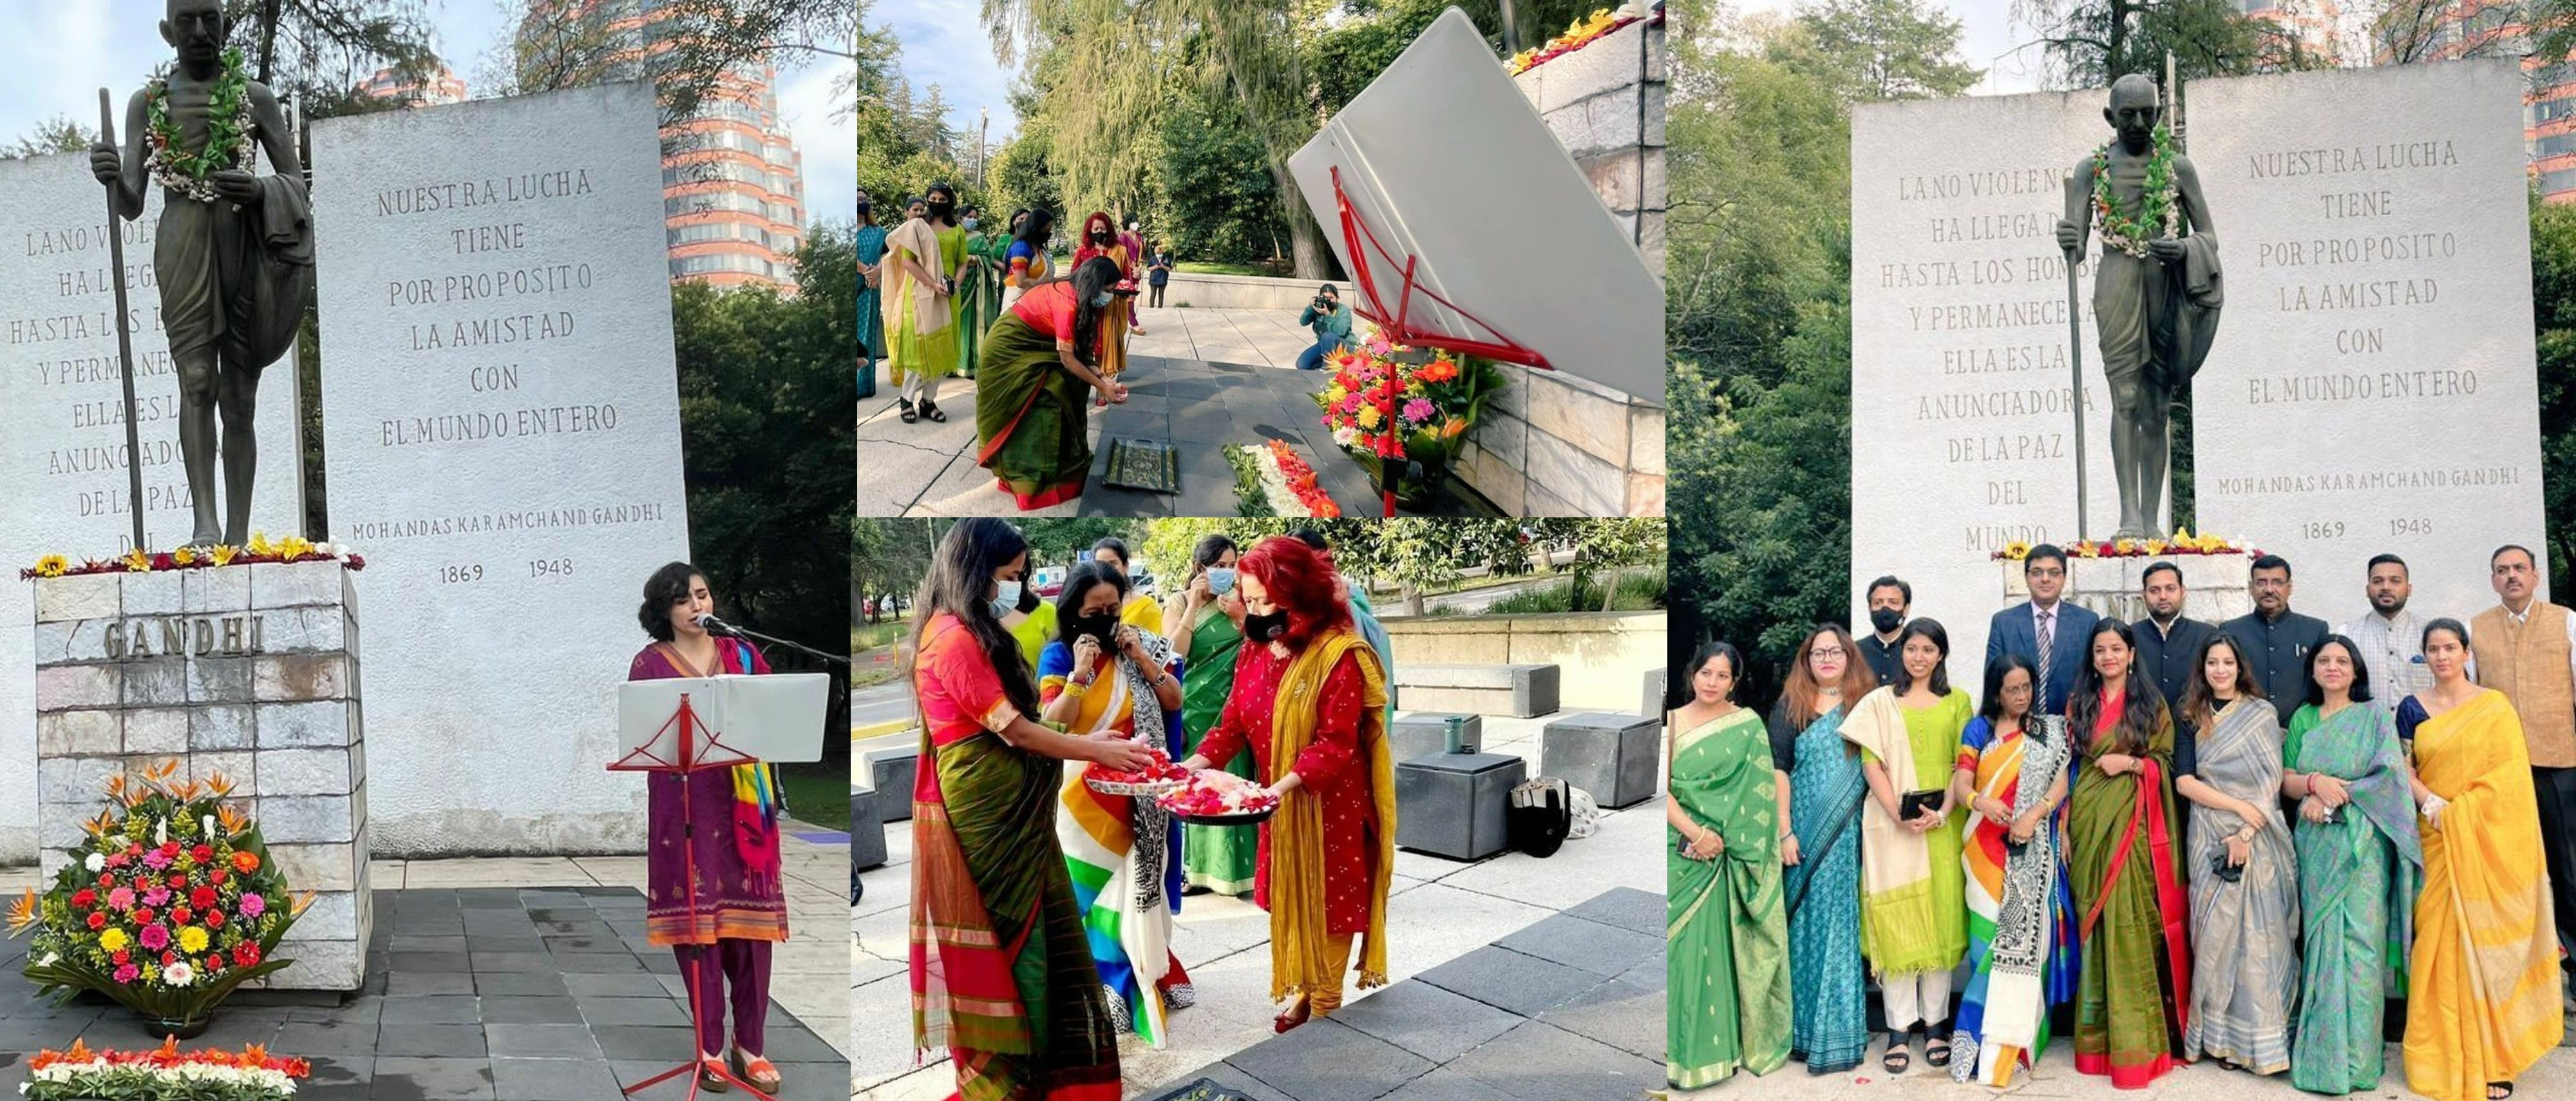 Embassy celebrated Gandhi Jayanti on 2 October. Cd'A Ms. Juhi Rai paid floral tributes to Mahatma Gandhi statue which was followed by rendering of Vaishnav Janto by local singer.